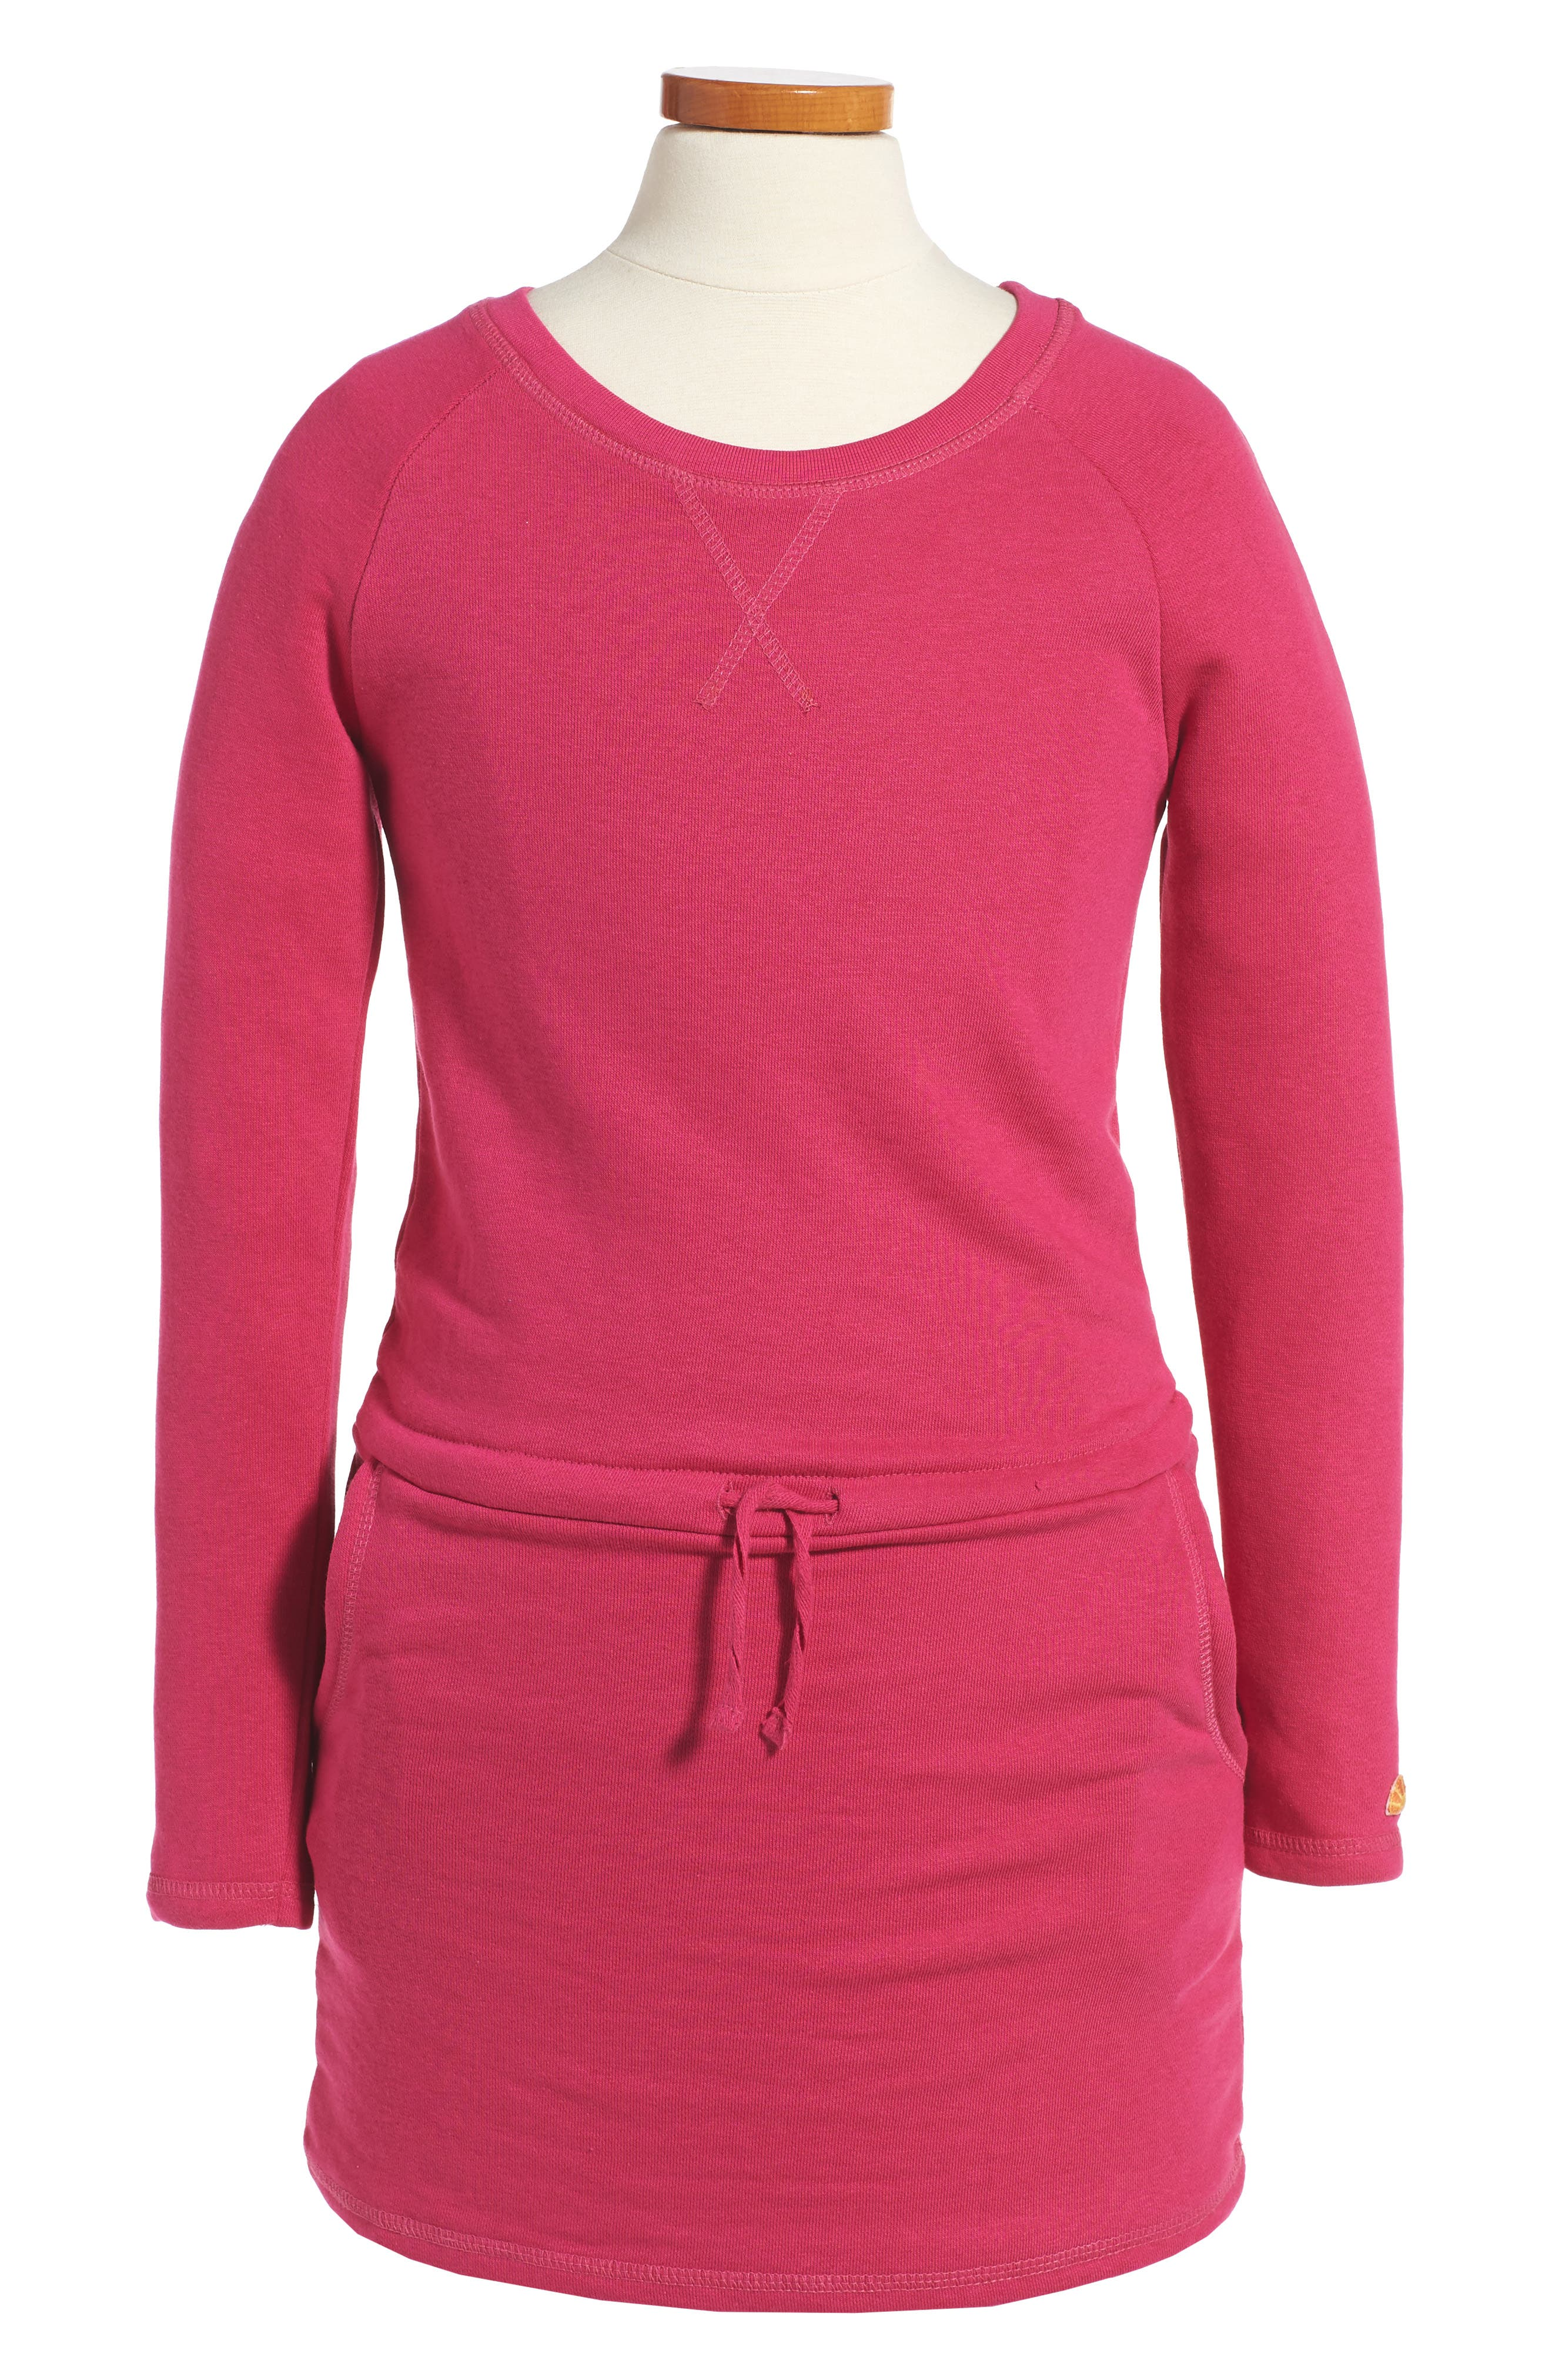 C & C California Sweatshirt Dress (Big Girls)